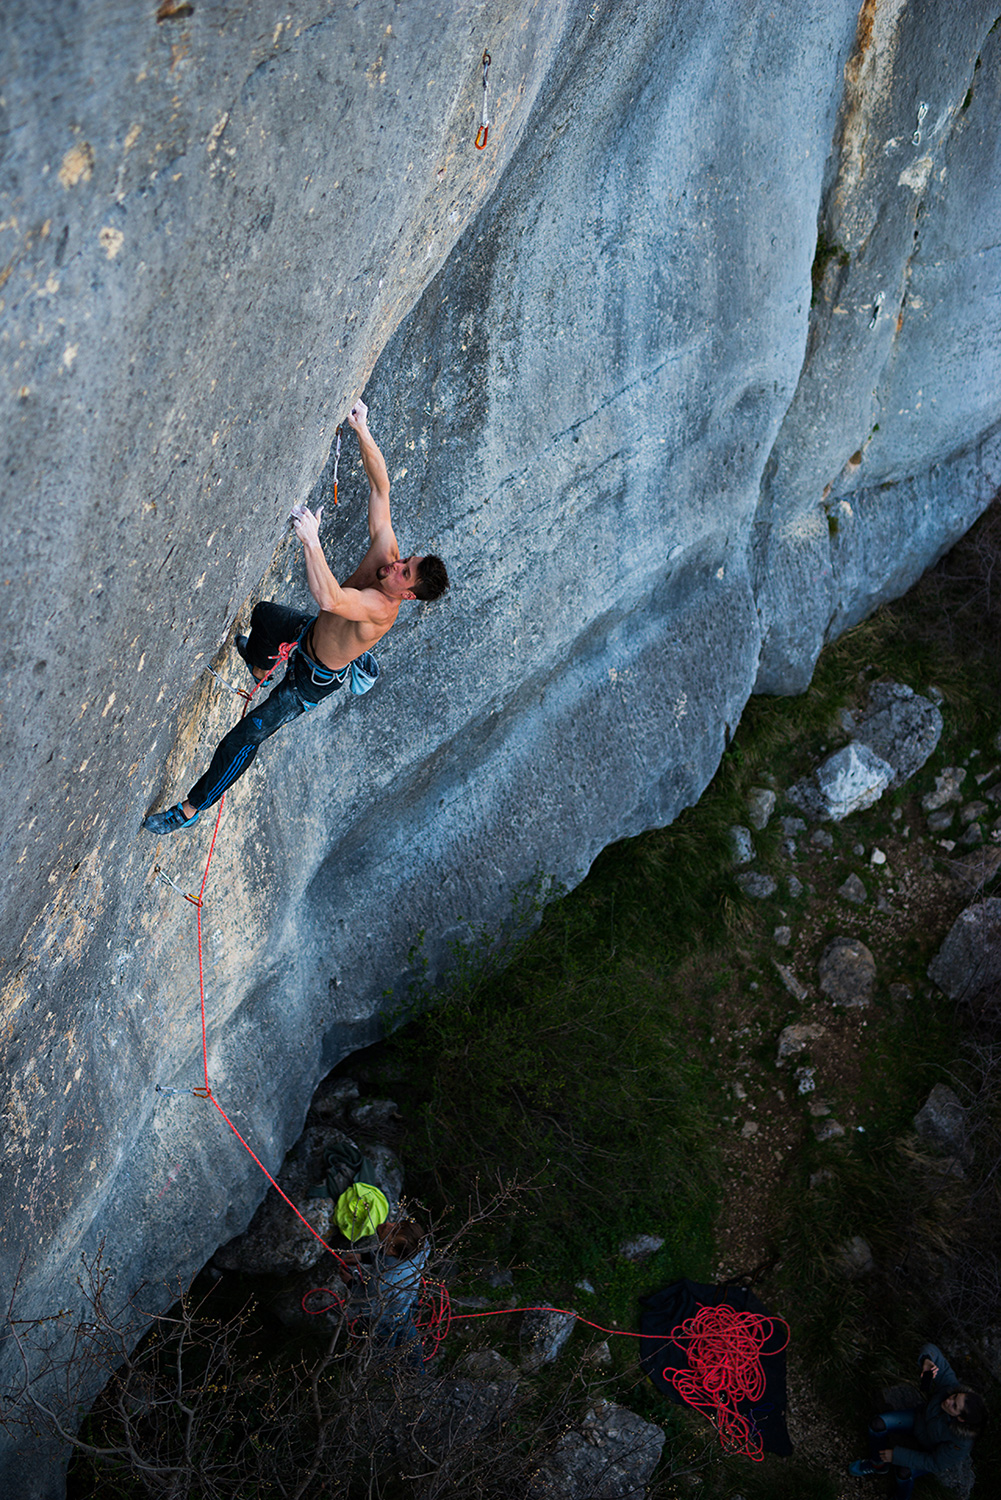 Jernej Kruder trying to climb Malvazija 8b+